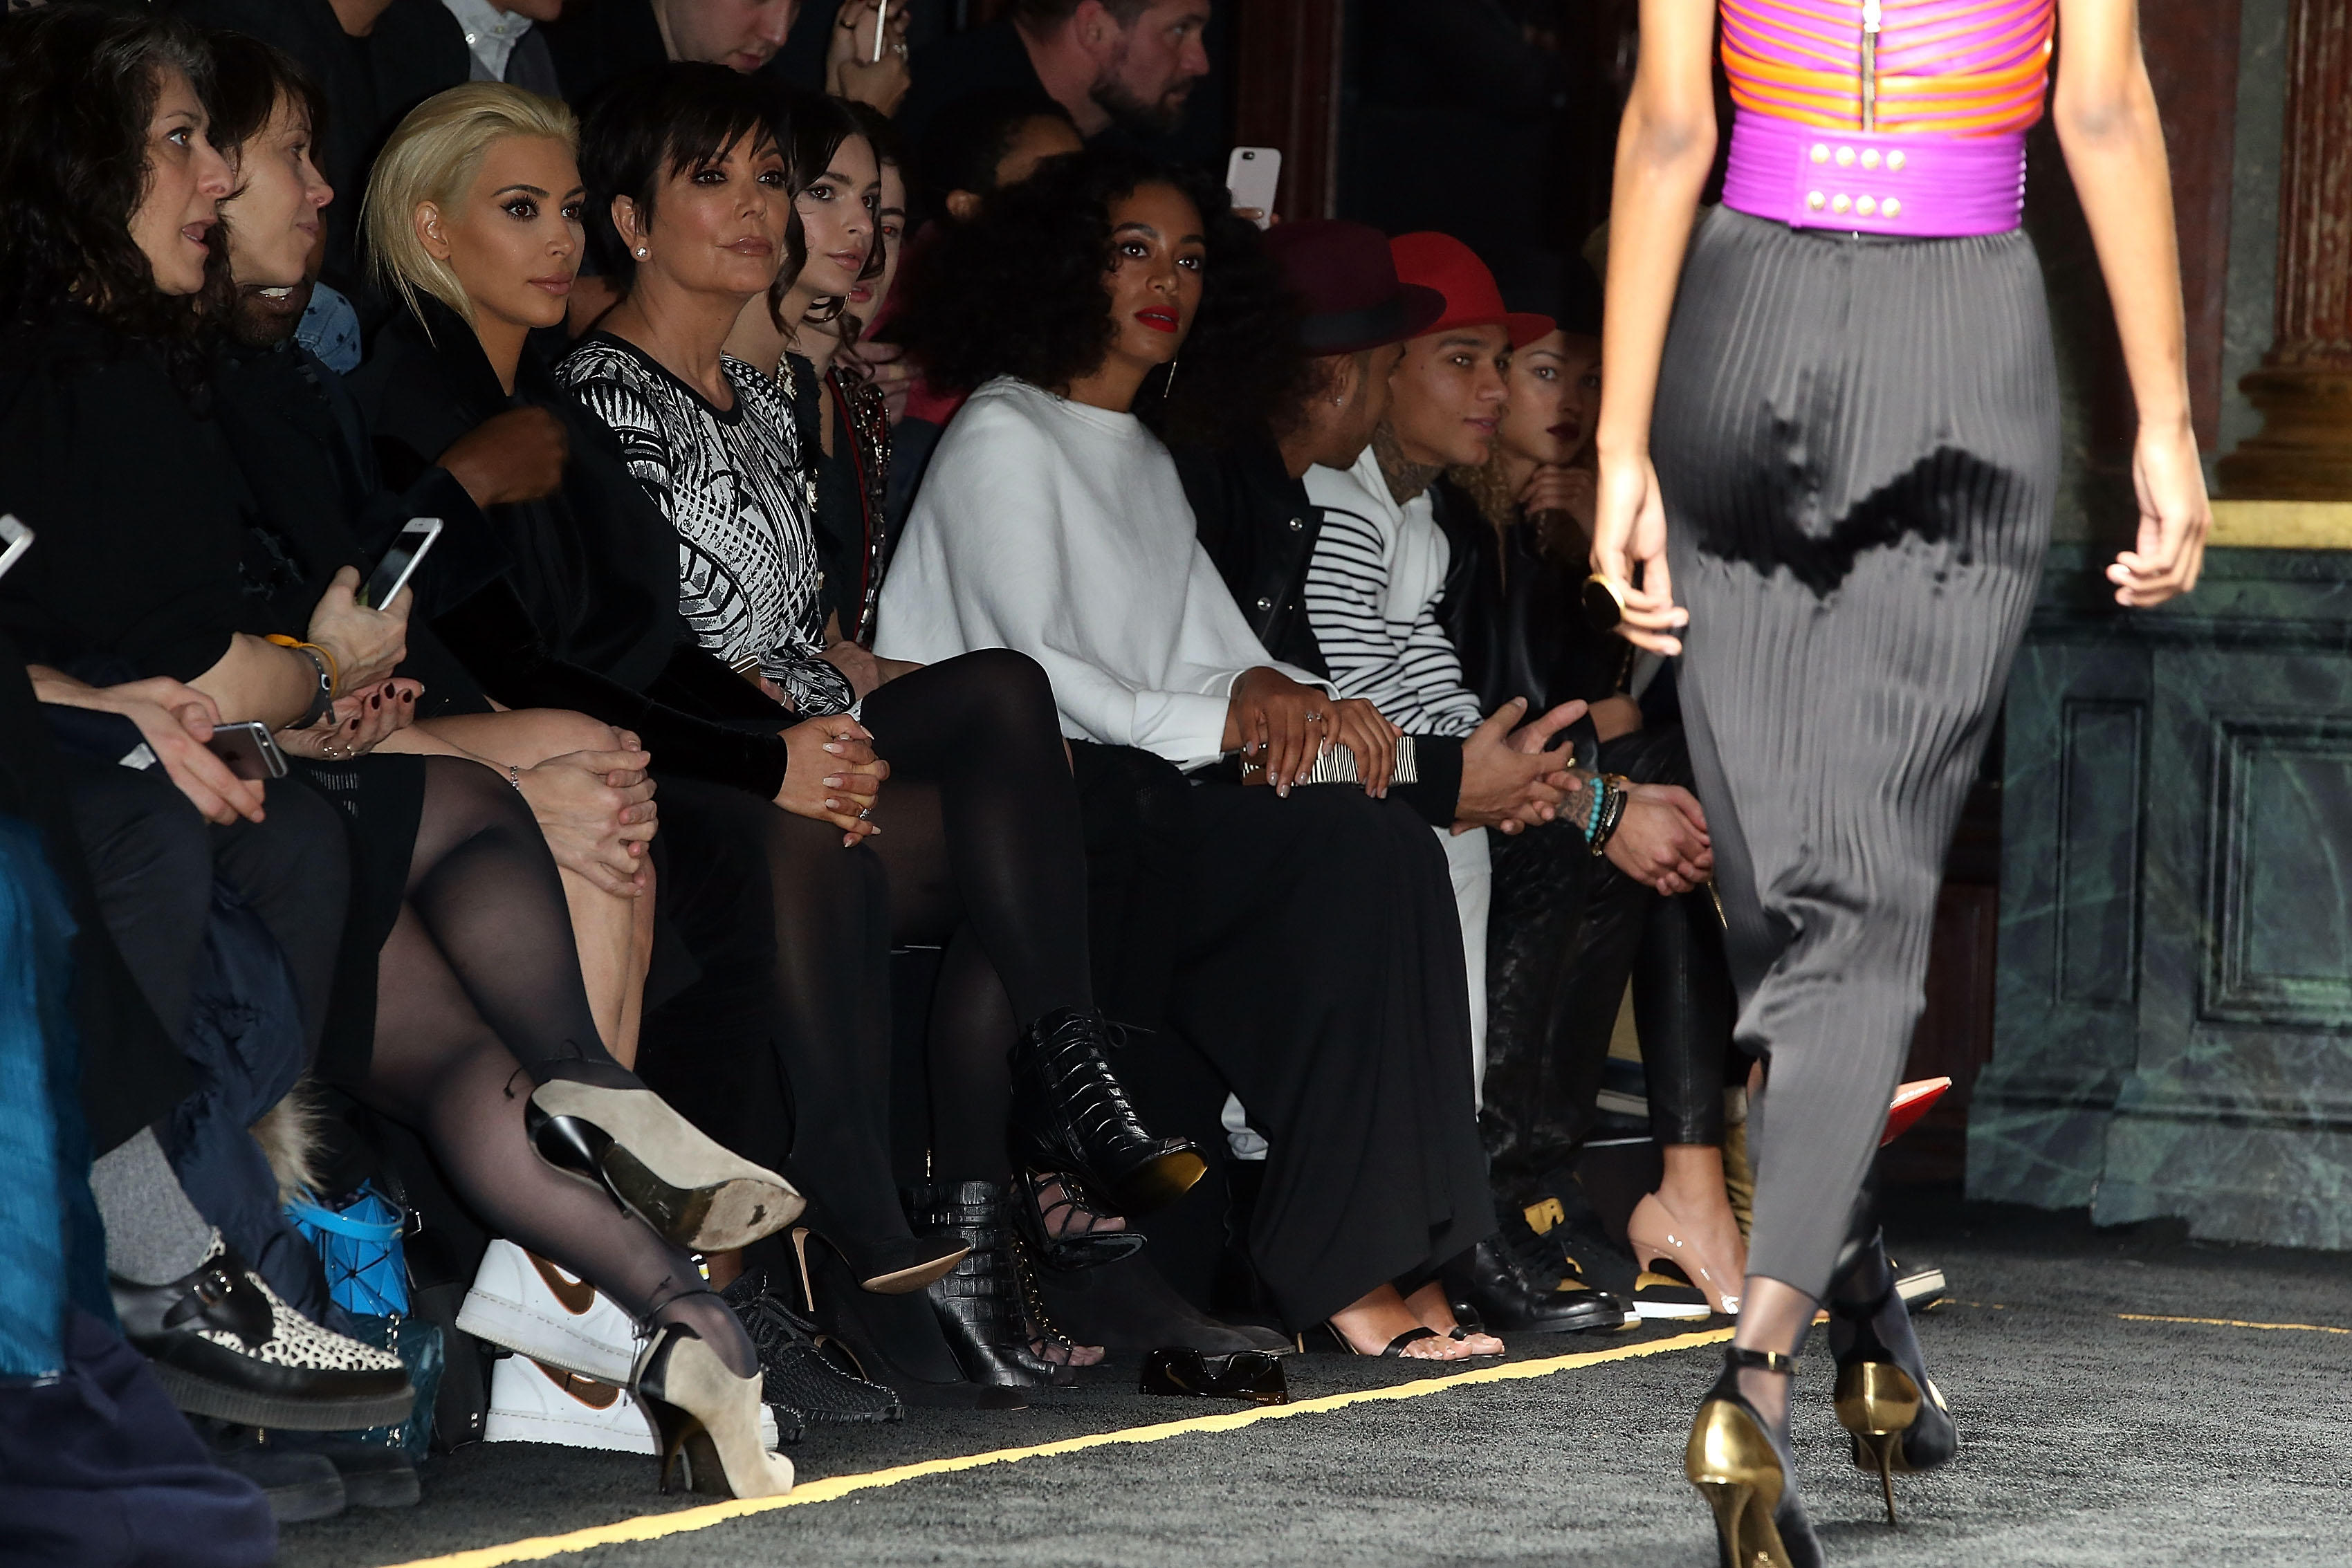 Kim Kardashian, Kris Jenner, Solange Knowles, and Kanye West attend Balmain show during Paris Fashion Week